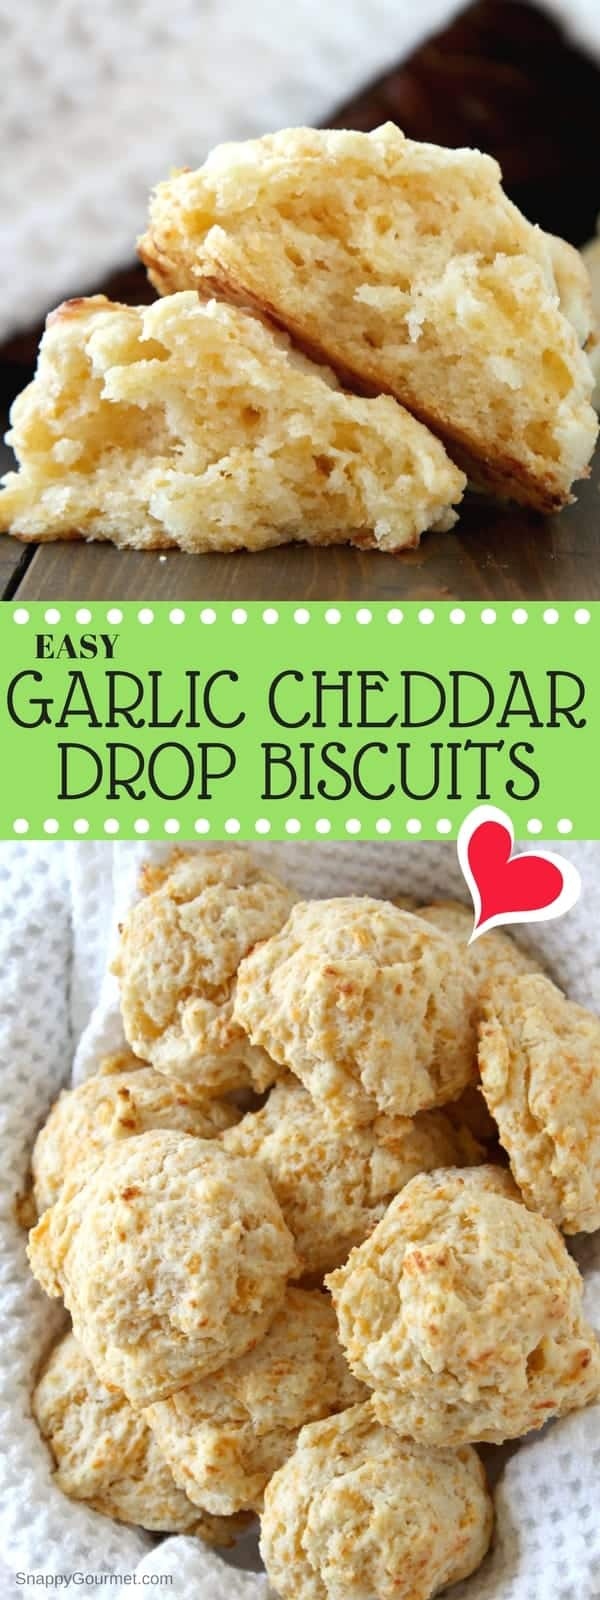 Garlic Cheddar Drop Biscuits Recipe - easy homemade from scratch biscuits! SnappyGourmet.com